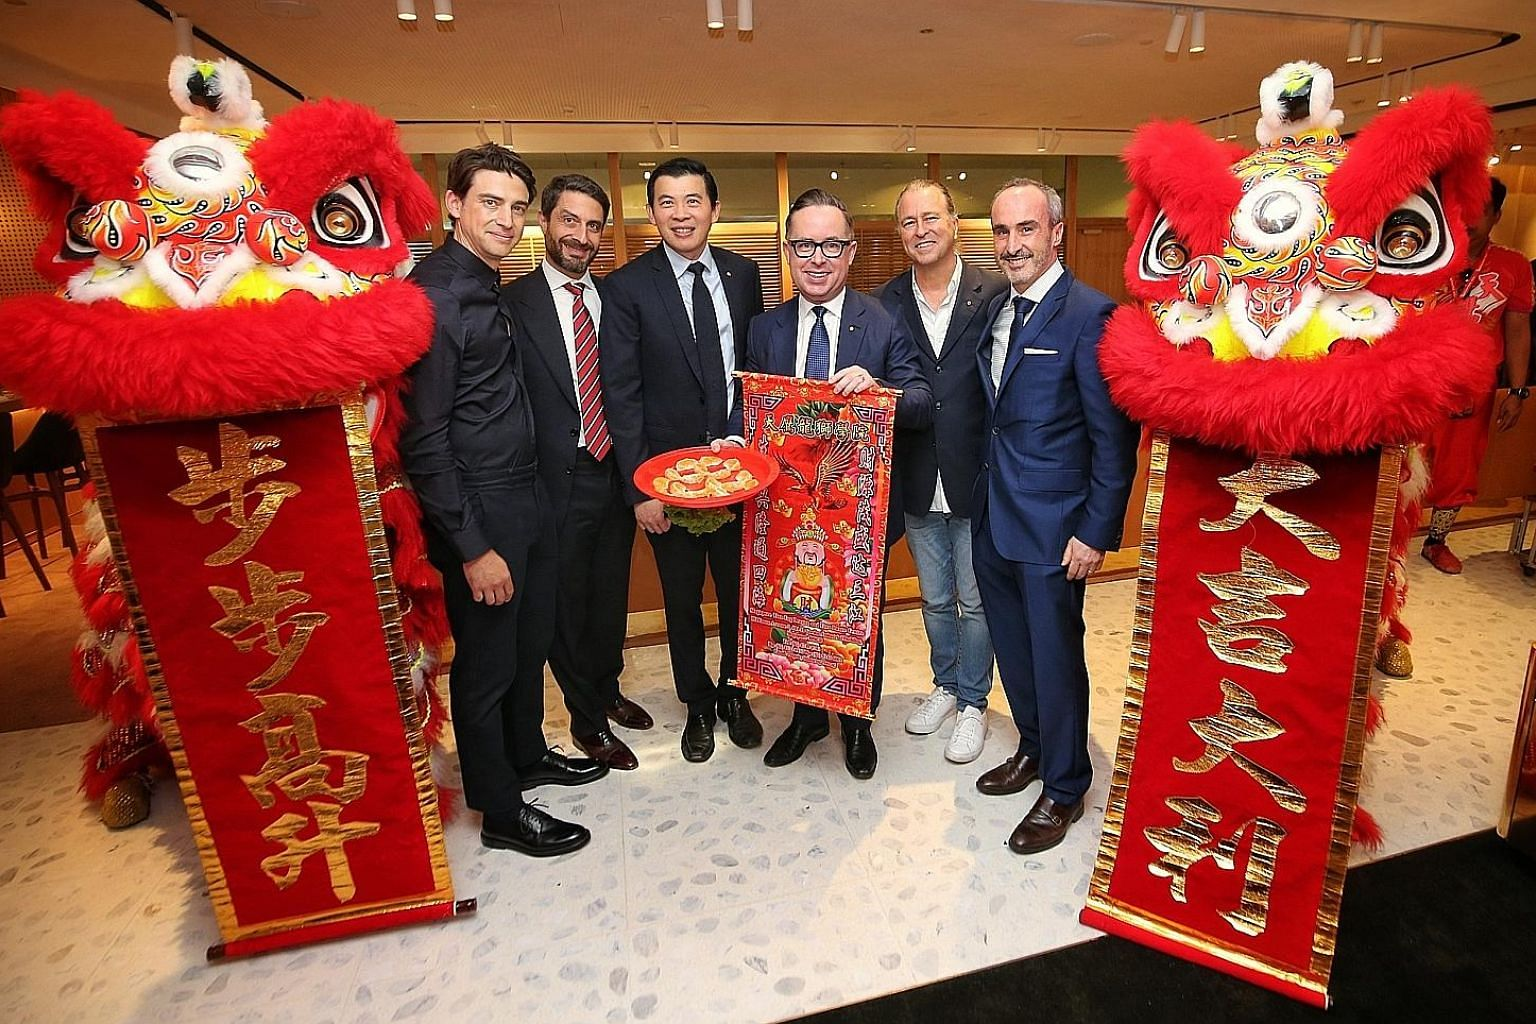 Qantas International chief executive Tino La Spina (second from left), Changi Airport Group chief executive Lee Seow Hiang (third from left) and Qantas chief executive Alan Joyce (with banner) with key designers of Qantas First Lounge at the opening